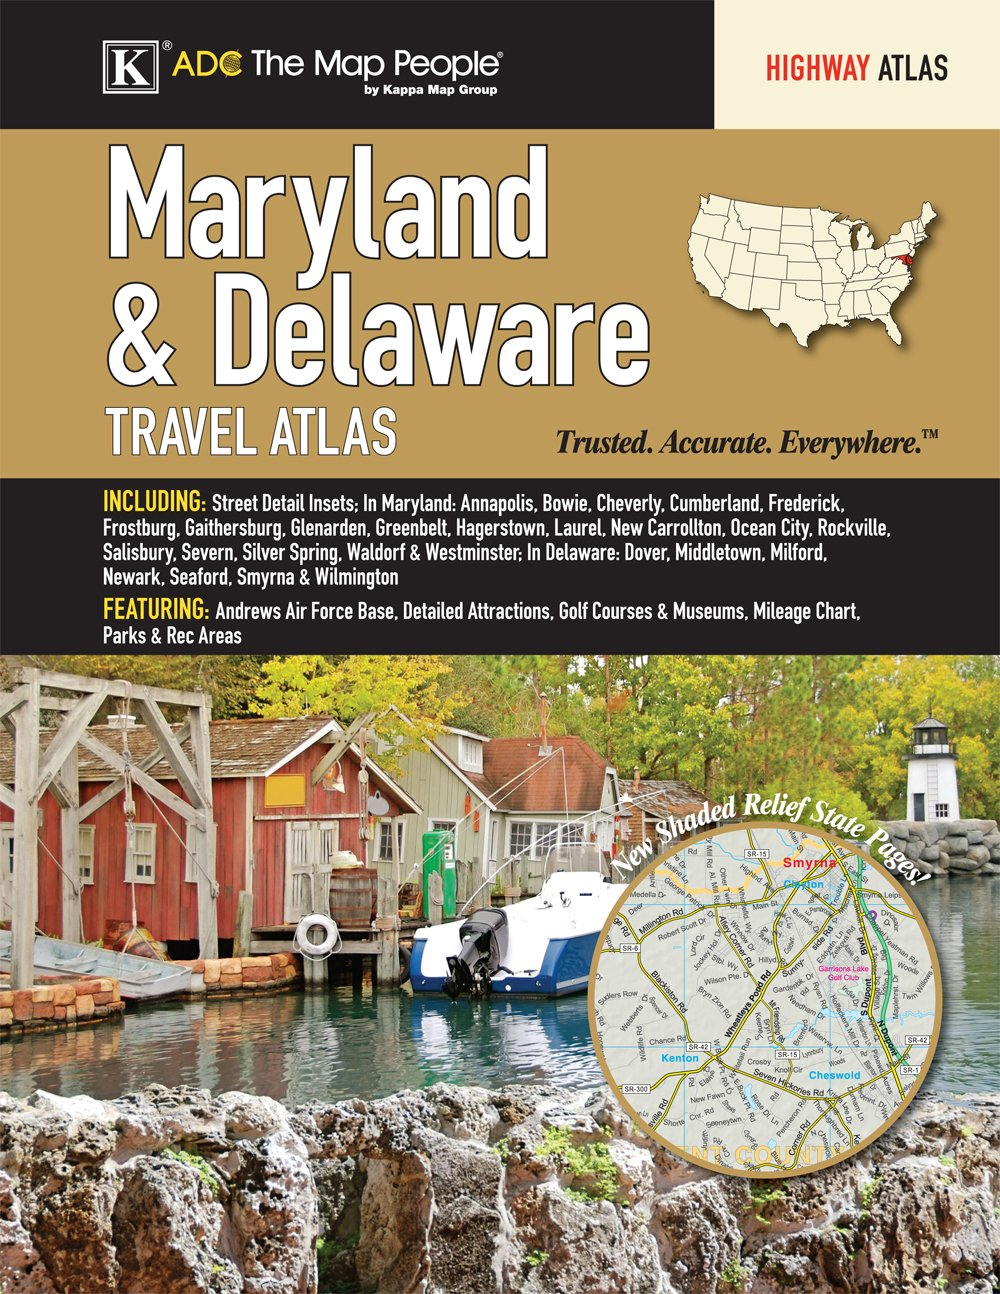 Maryland Delaware State Travel Atlas product image